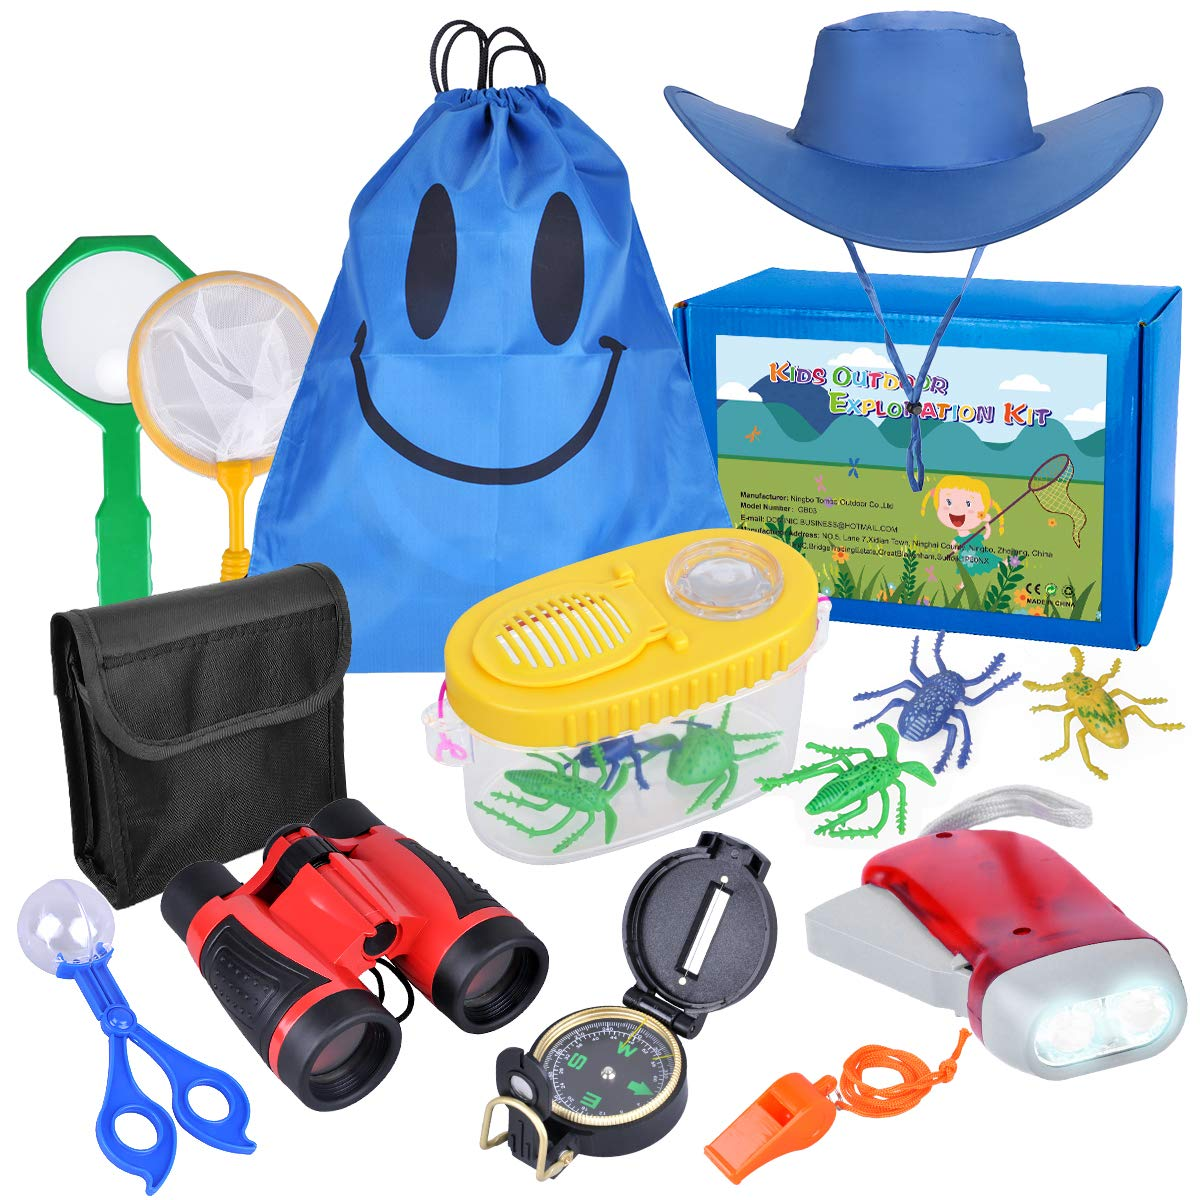 LOYO Outdoor Explorer Kit - Adventure Bug Catcher Kit for Kids Nature Exploration Gift Toys for 3, 4, 5, 6 -10 Year Old Boys Camping, Hiking by LOYO